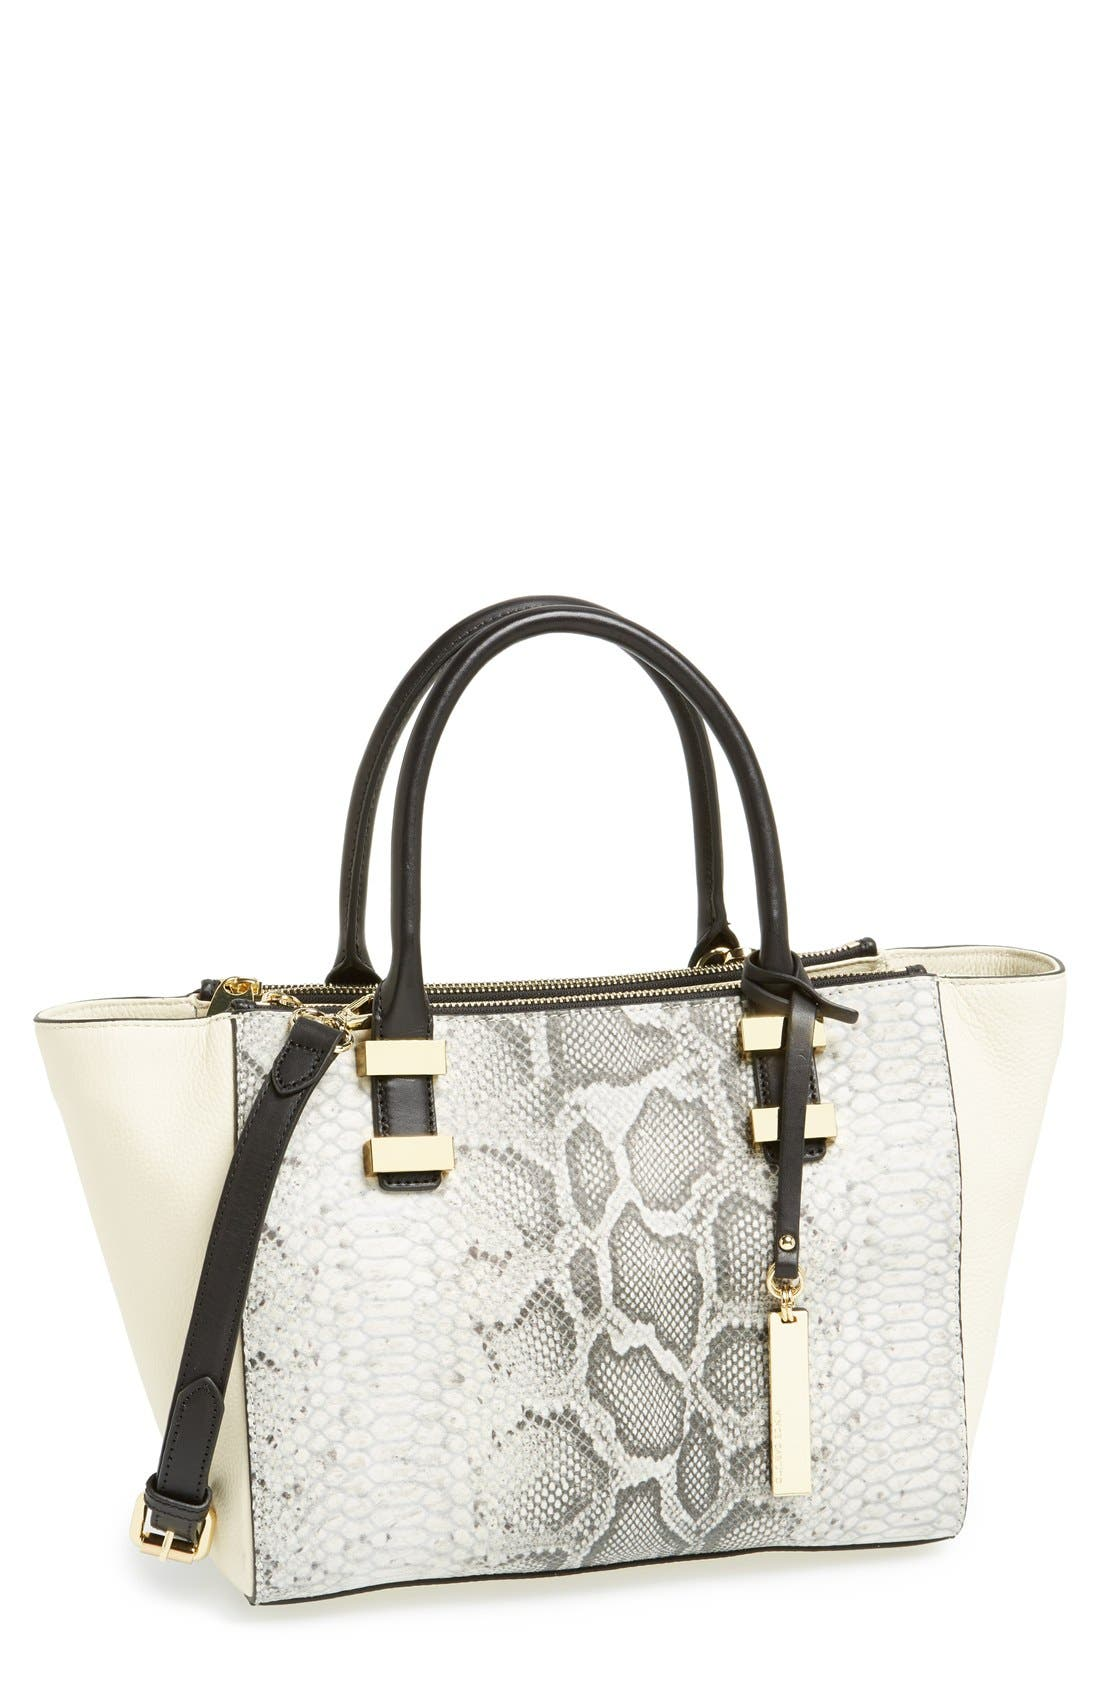 Main Image - Vince Camuto 'Mandy' Leather Satchel